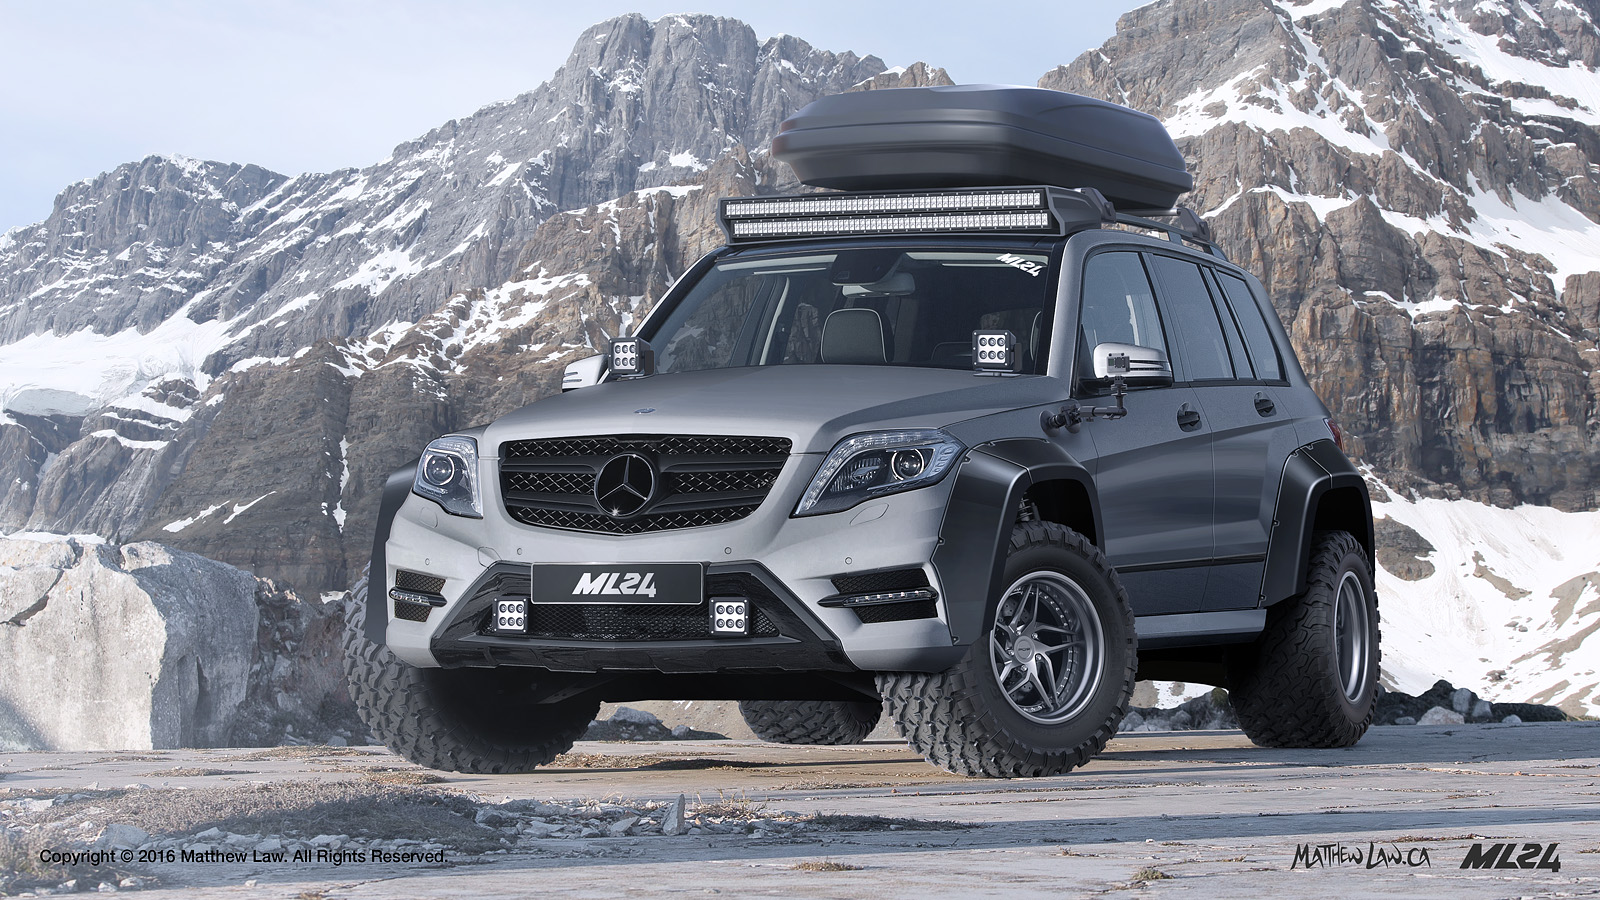 ml24 automotive design prototyping and body kits 2012 2015 mercedes benz glk x204 wide body kit. Black Bedroom Furniture Sets. Home Design Ideas